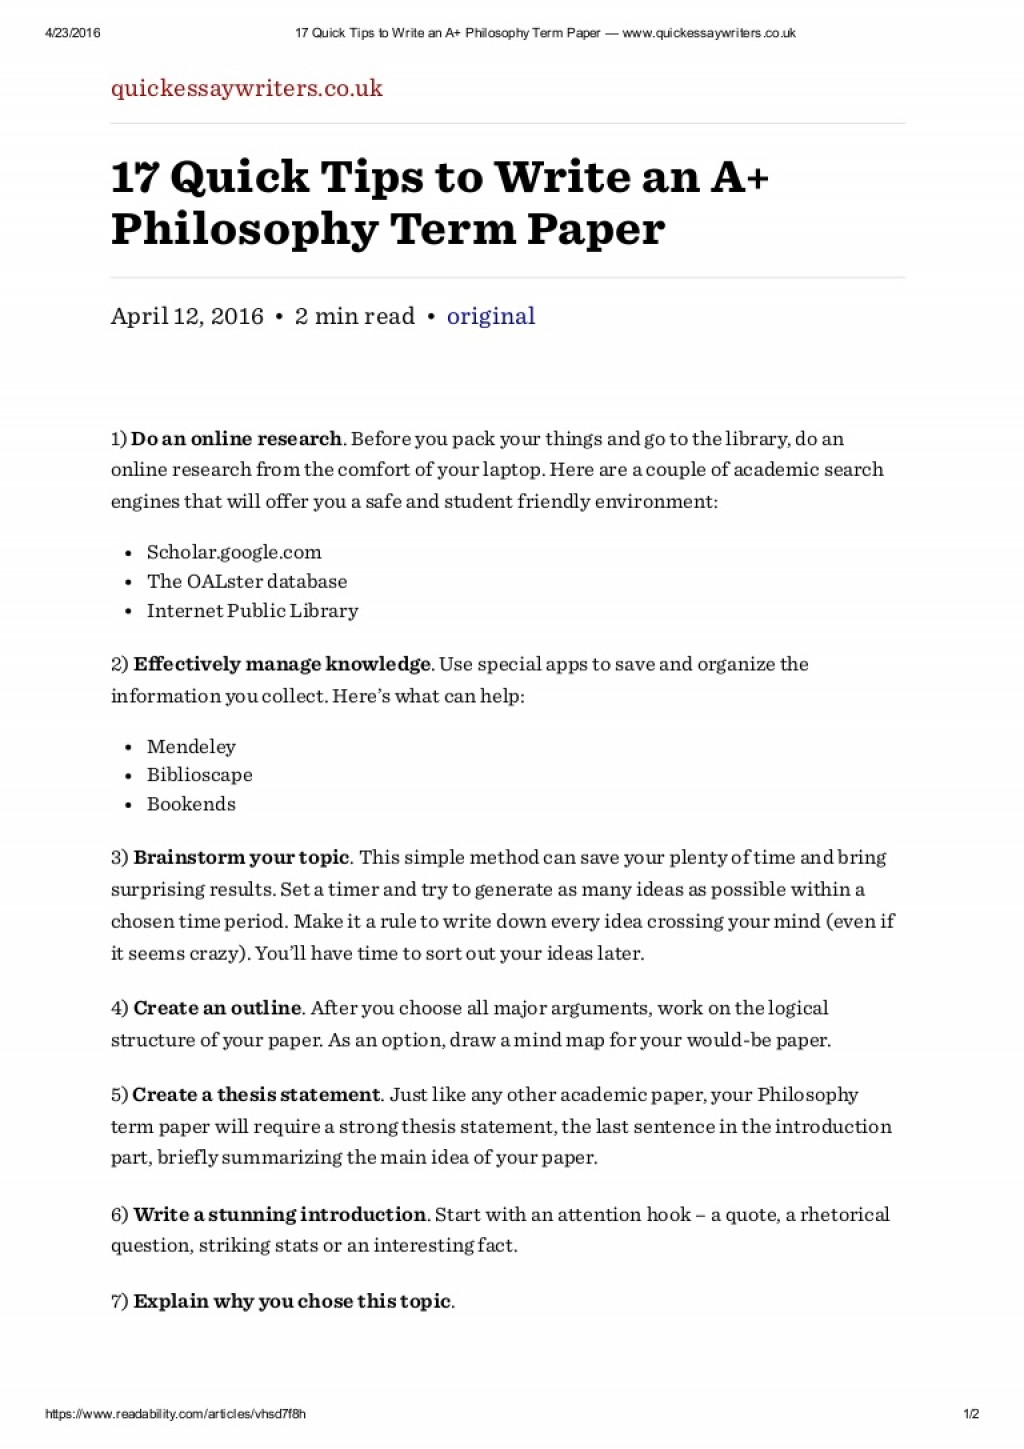 007 How To Write An Introduction For Research Paper Slideshare 17quicktipstowriteanaphilosophytermpaperwww Thumbnail Astounding A Large